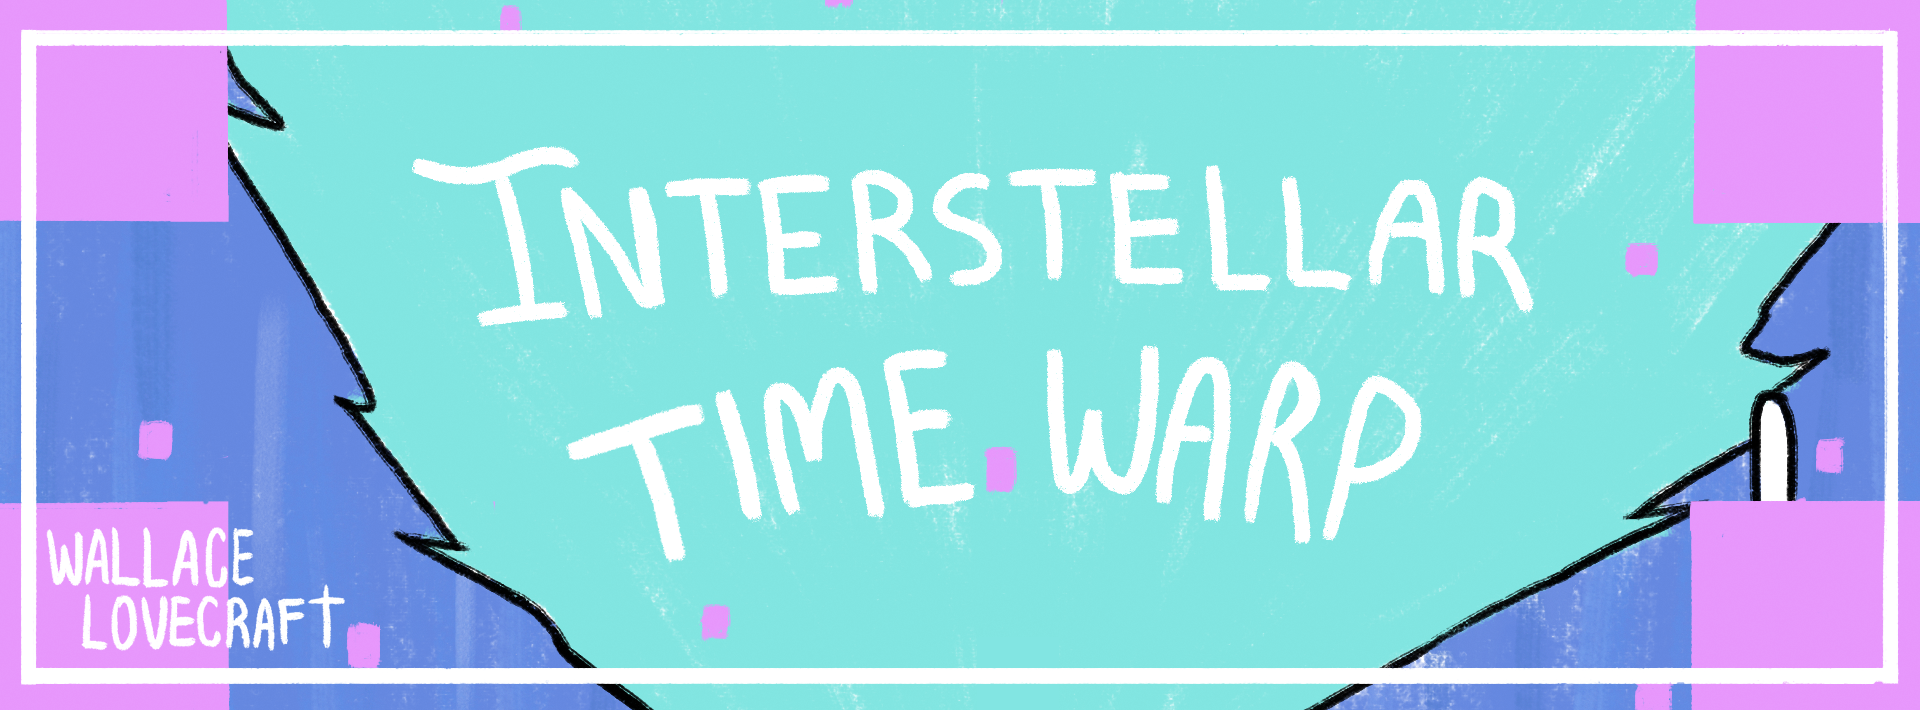 Interstellar Time Warp